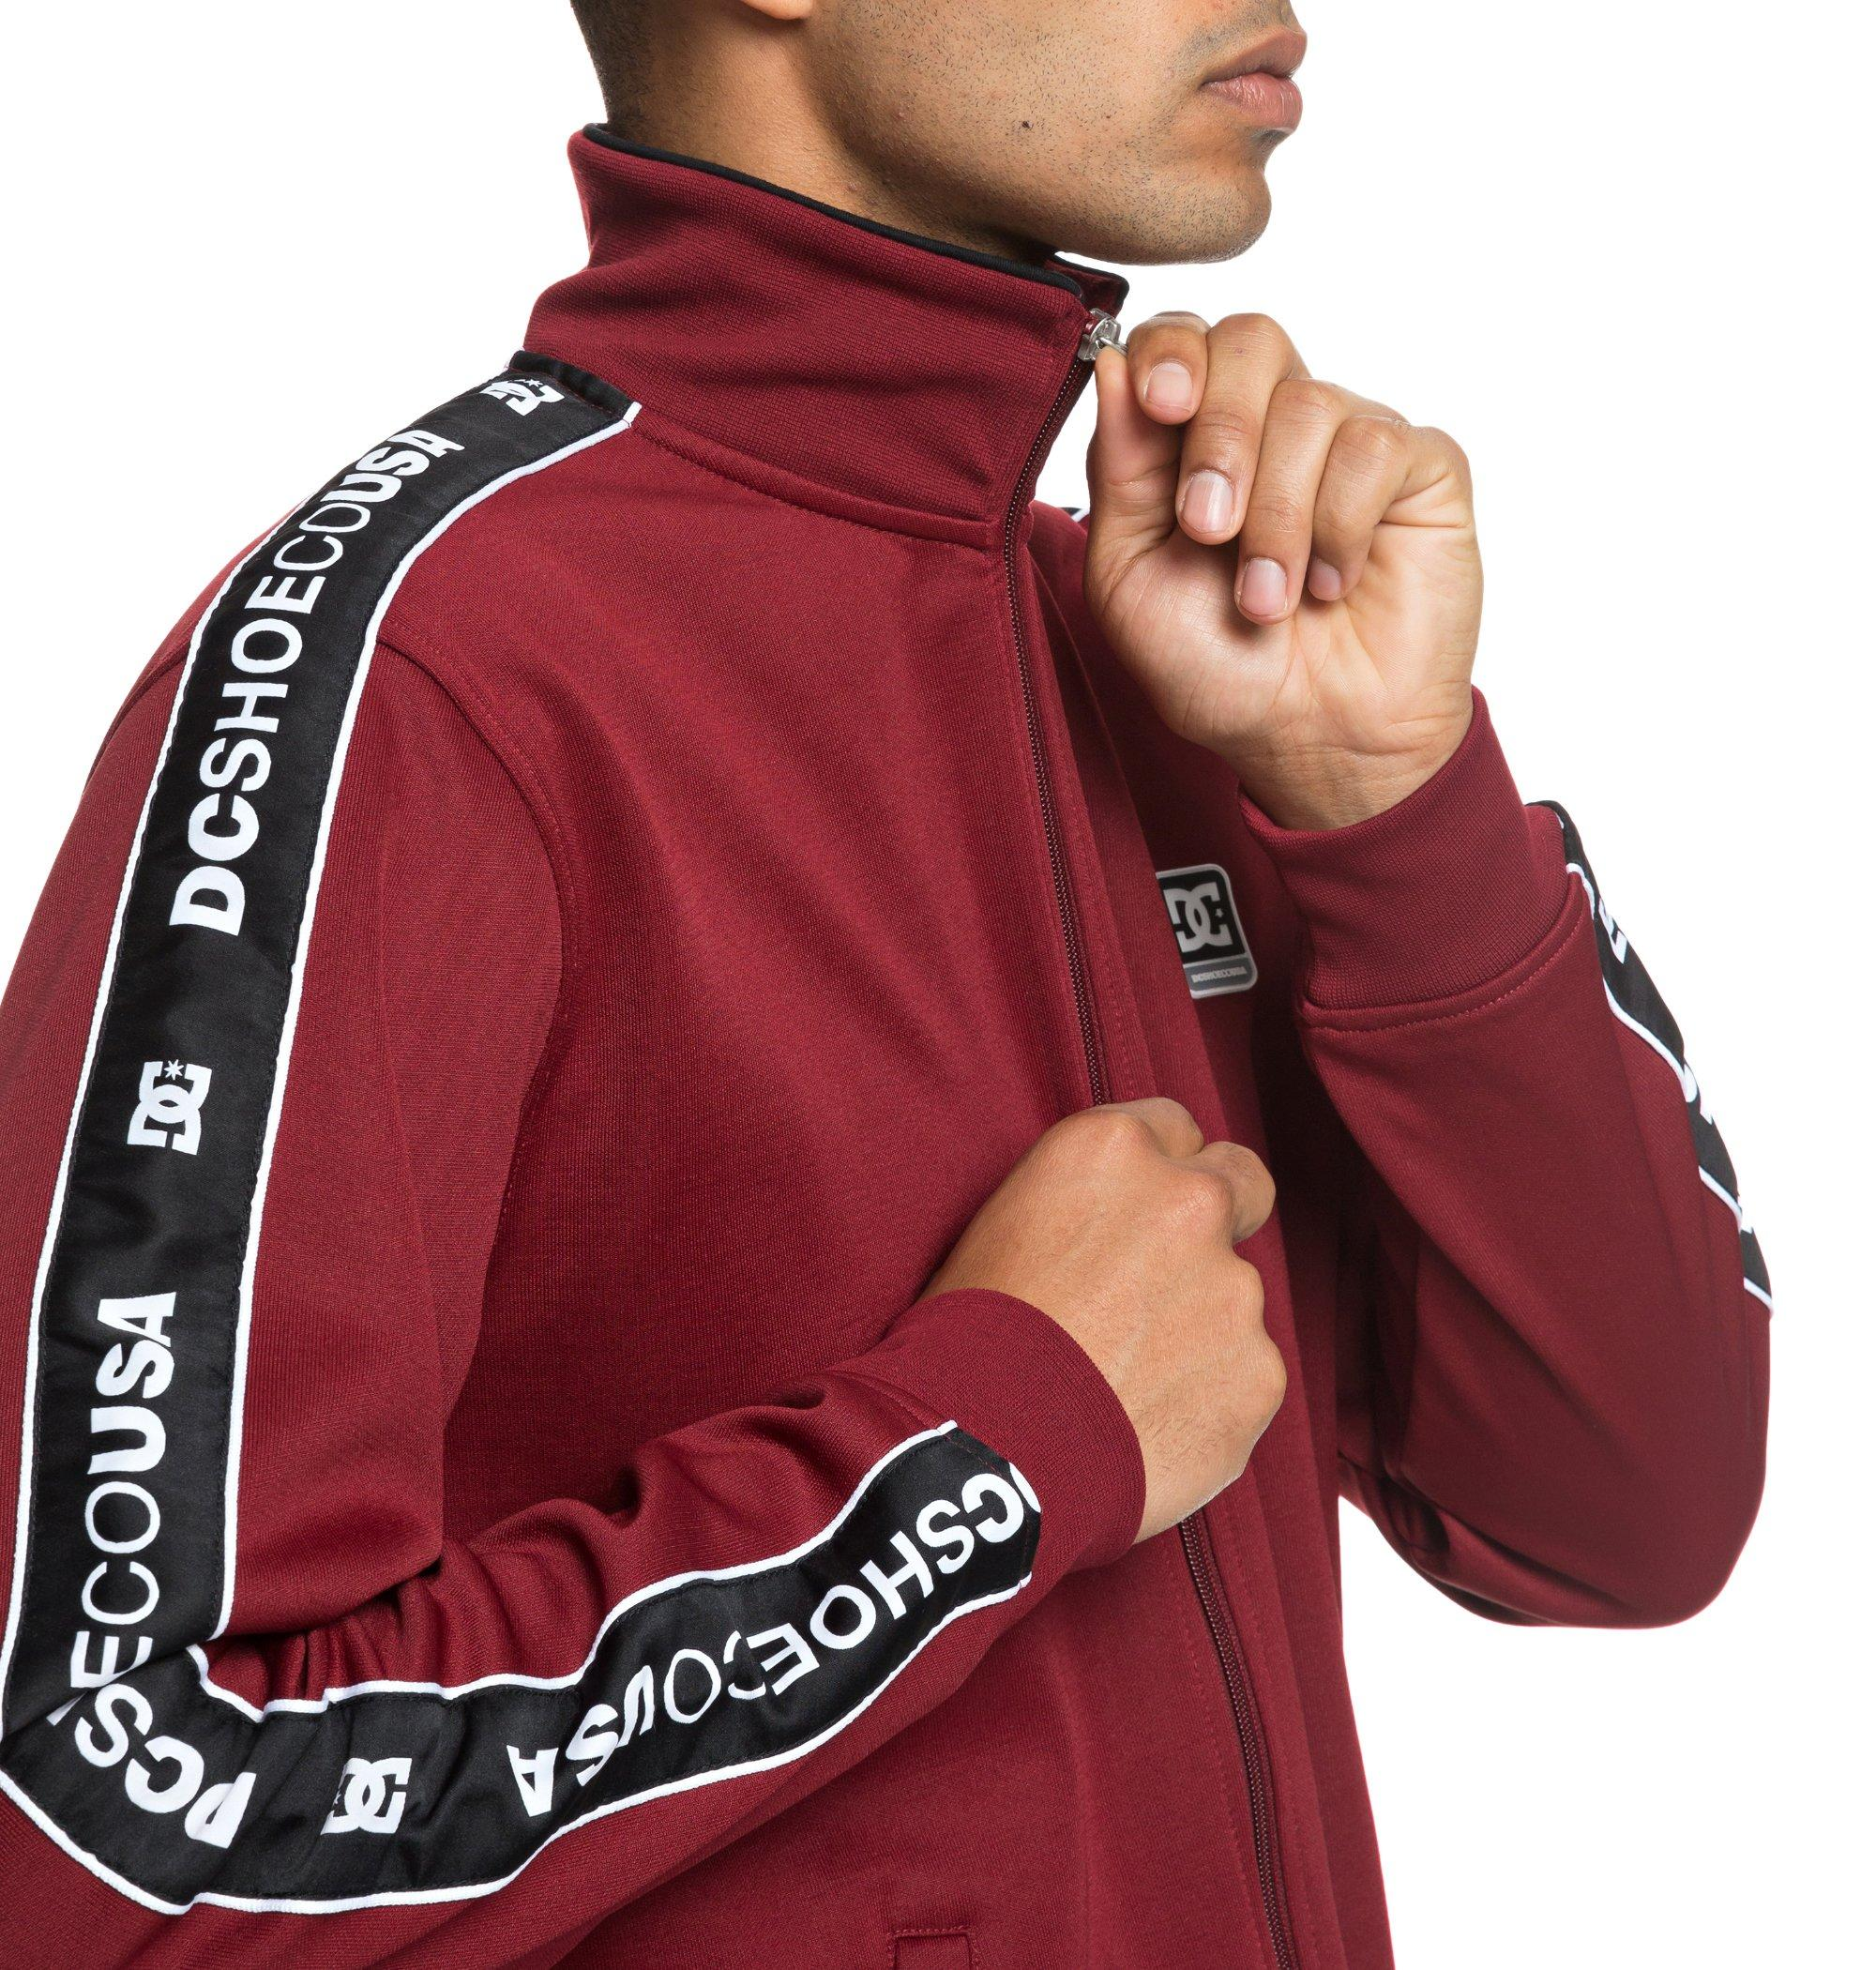 Chaqueta Dc Shoes modelo Bellingham en color burdeos-c